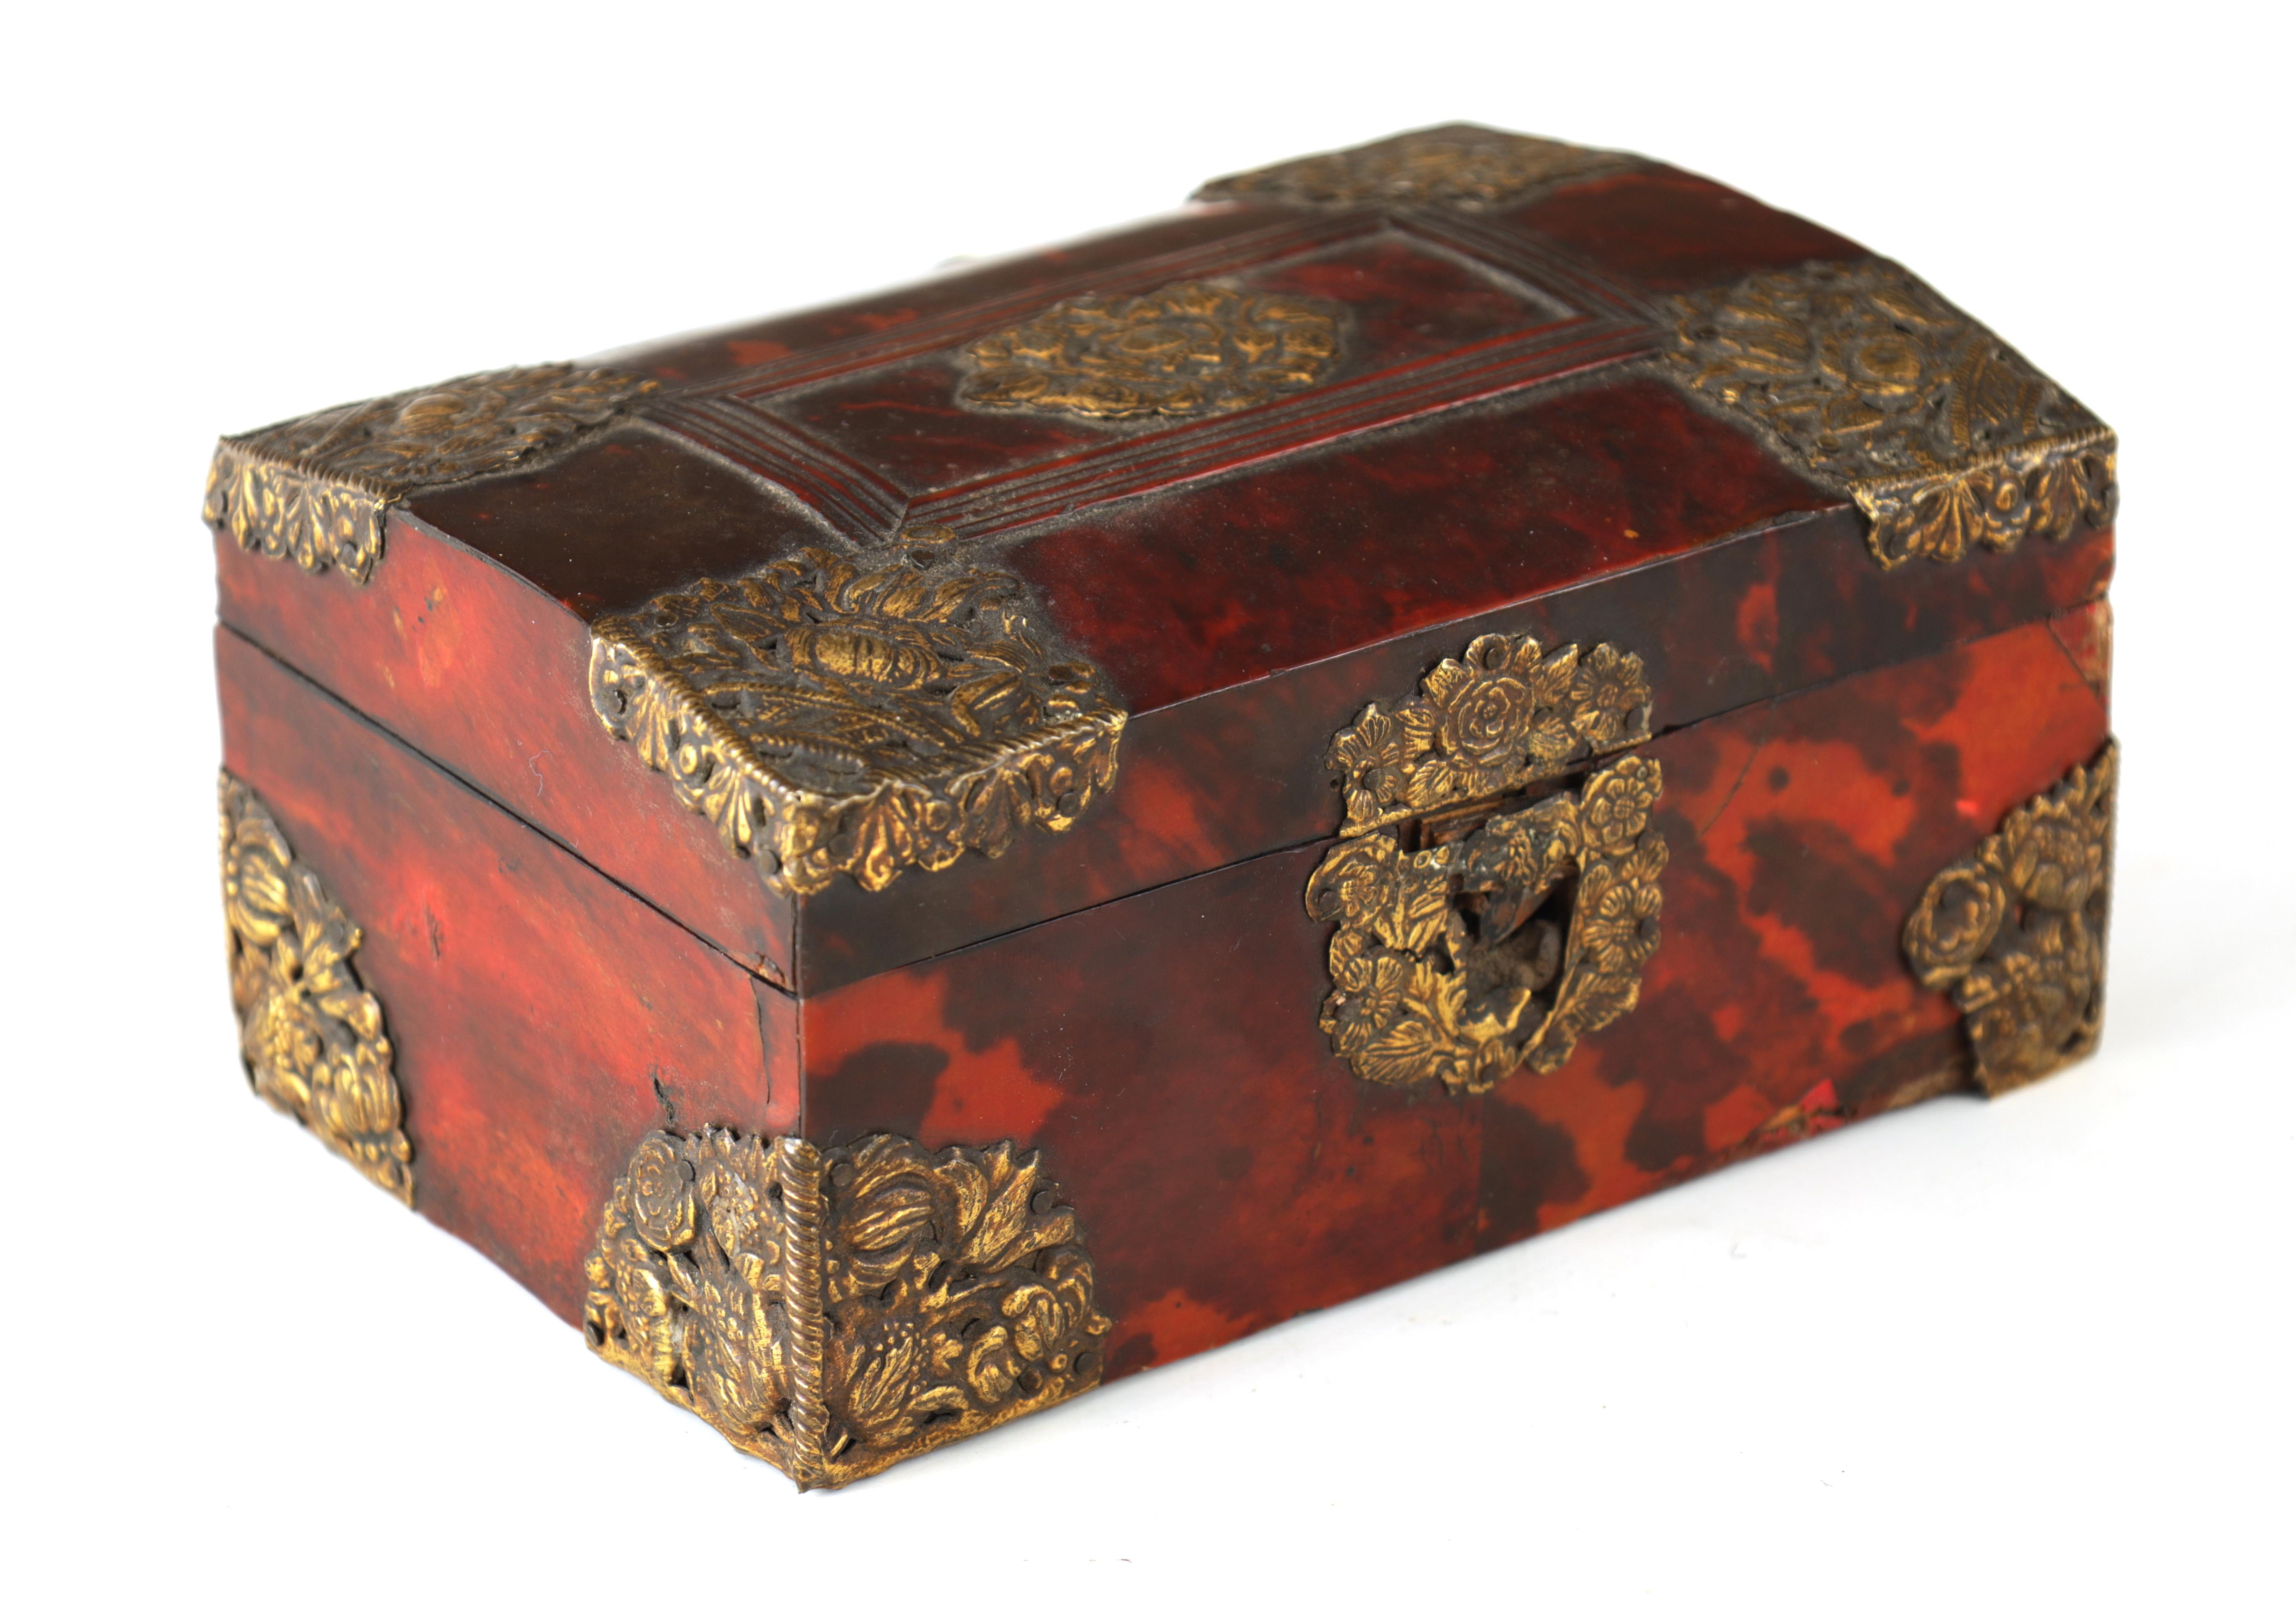 AN 18TH CENTURY DUTCH TORTOISESHELL AND GILT BRASS JEWELLERY BOX with domed locking lid and